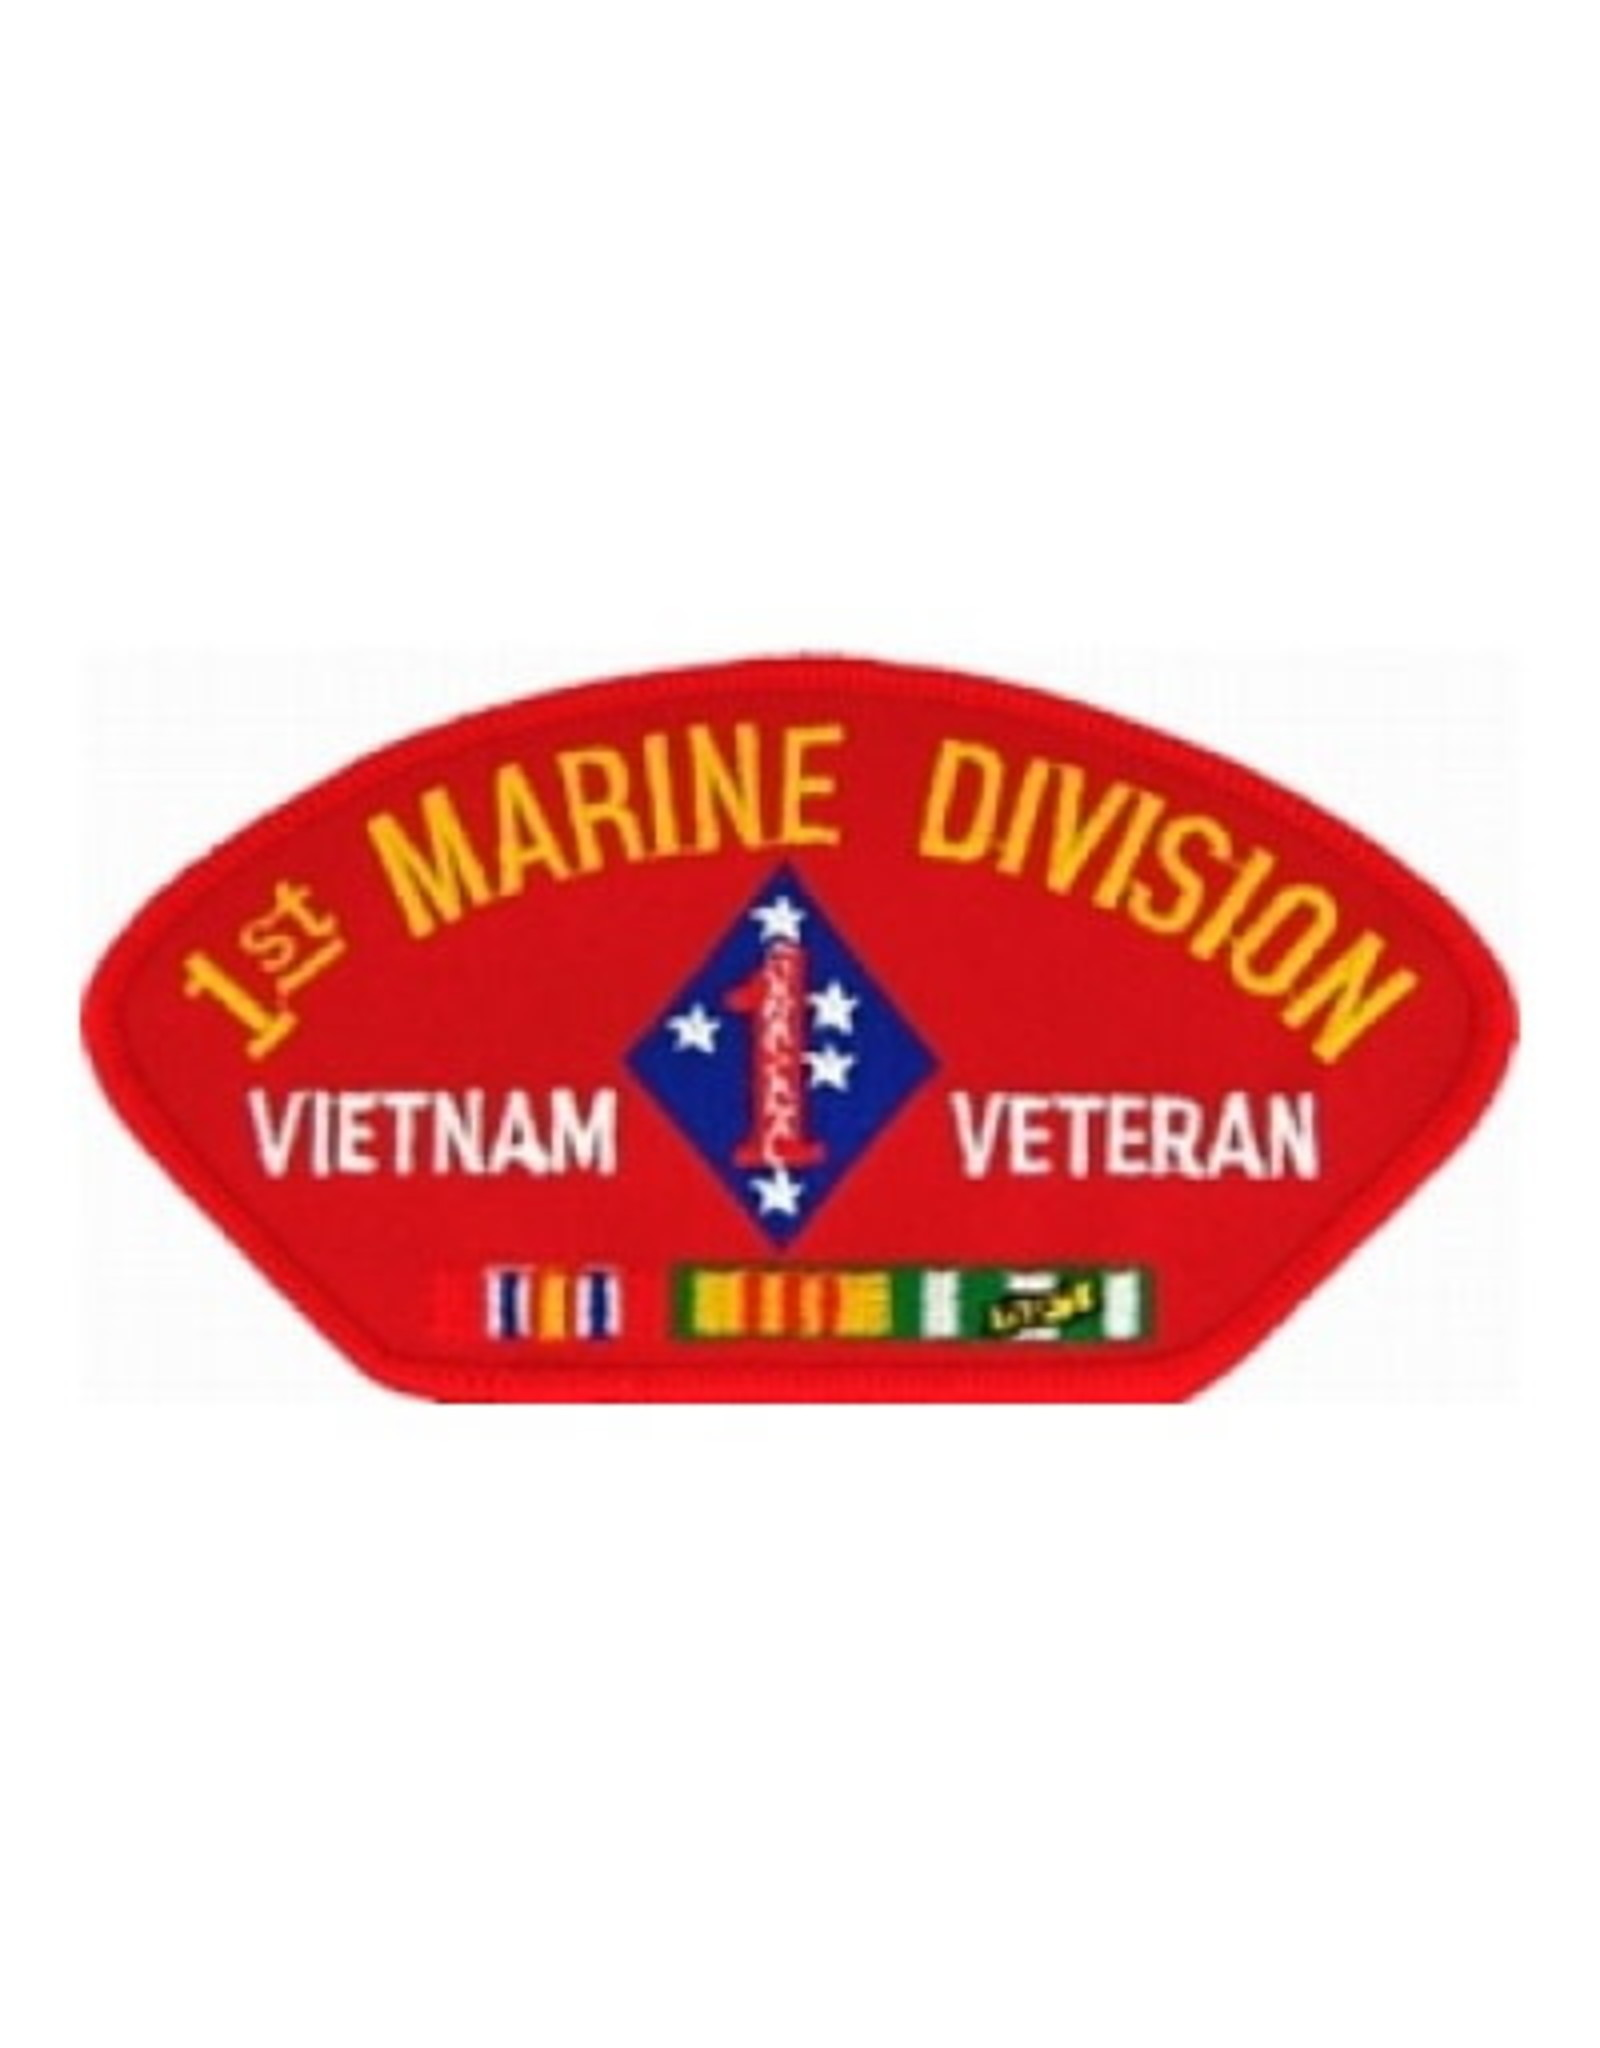 "MidMil Embroidered 1st Marine Division Vietnam Veteran Patch with Emblem and Ribbons 5.2"" wide x 2.7"" high Red"